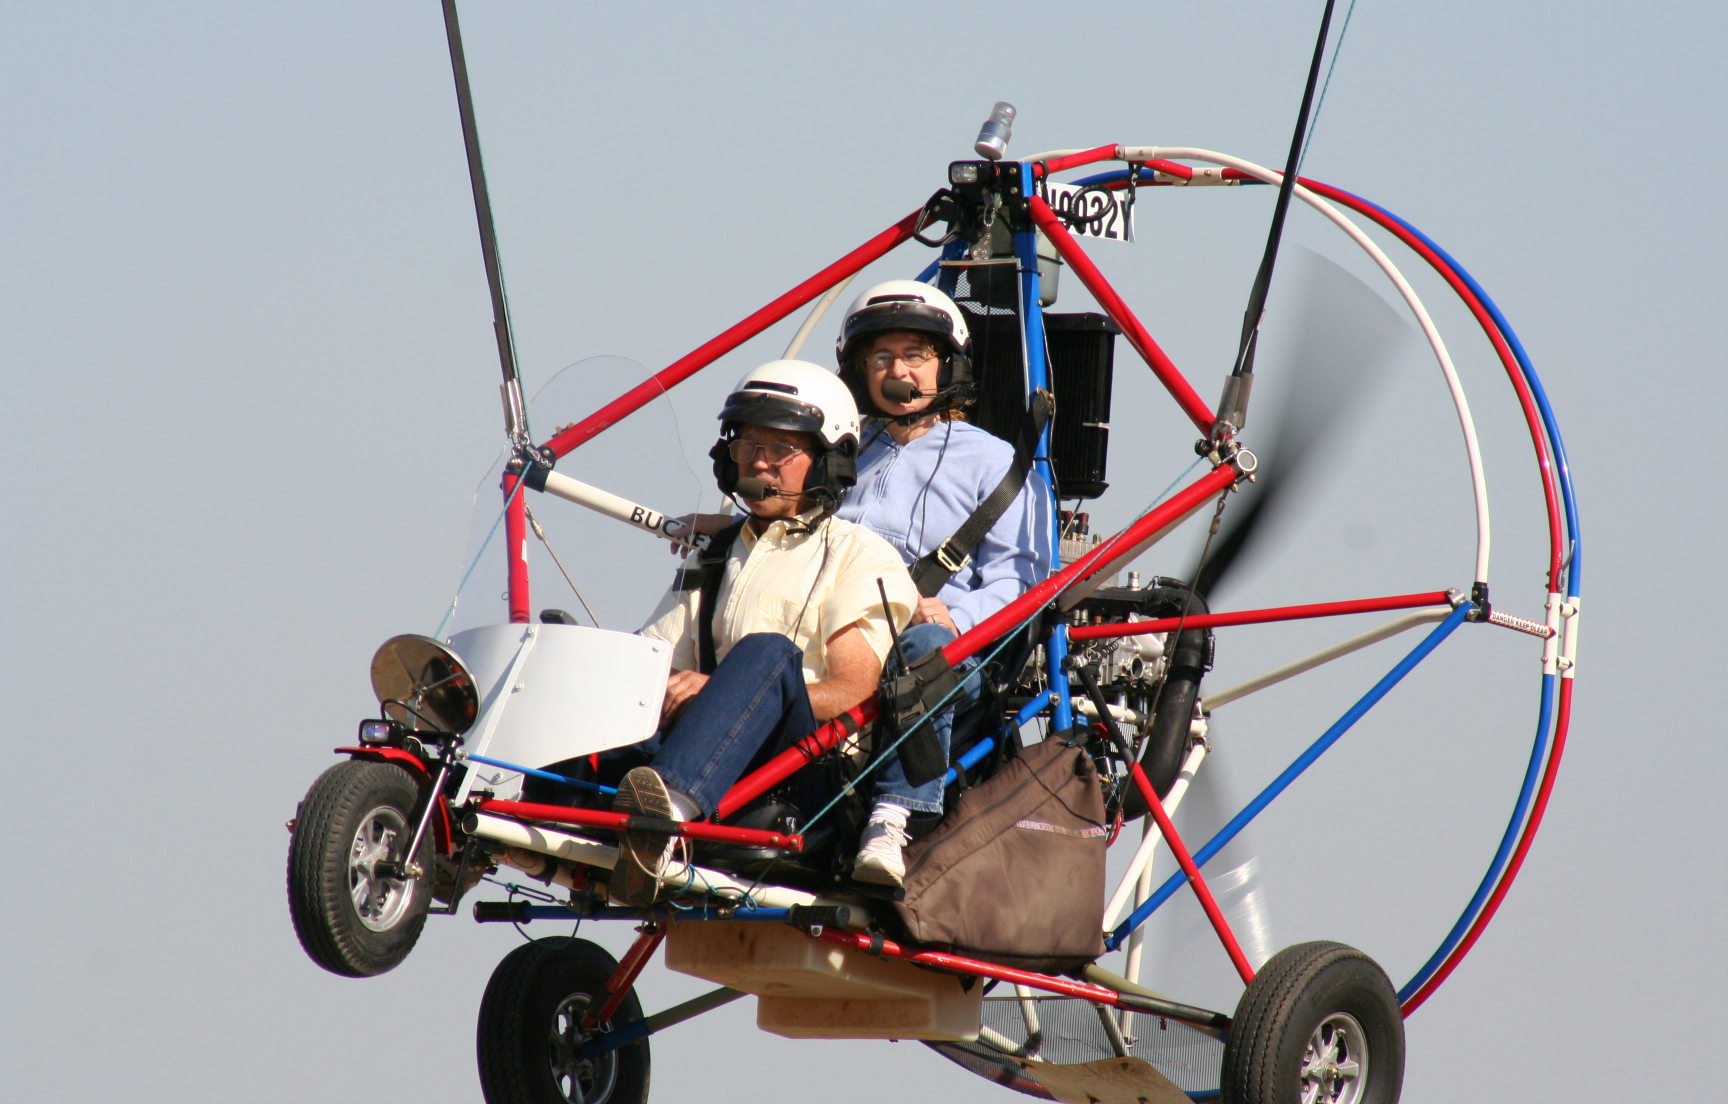 Date: Sept 16-17, 2020 LSRM Powered Parachute Add-On